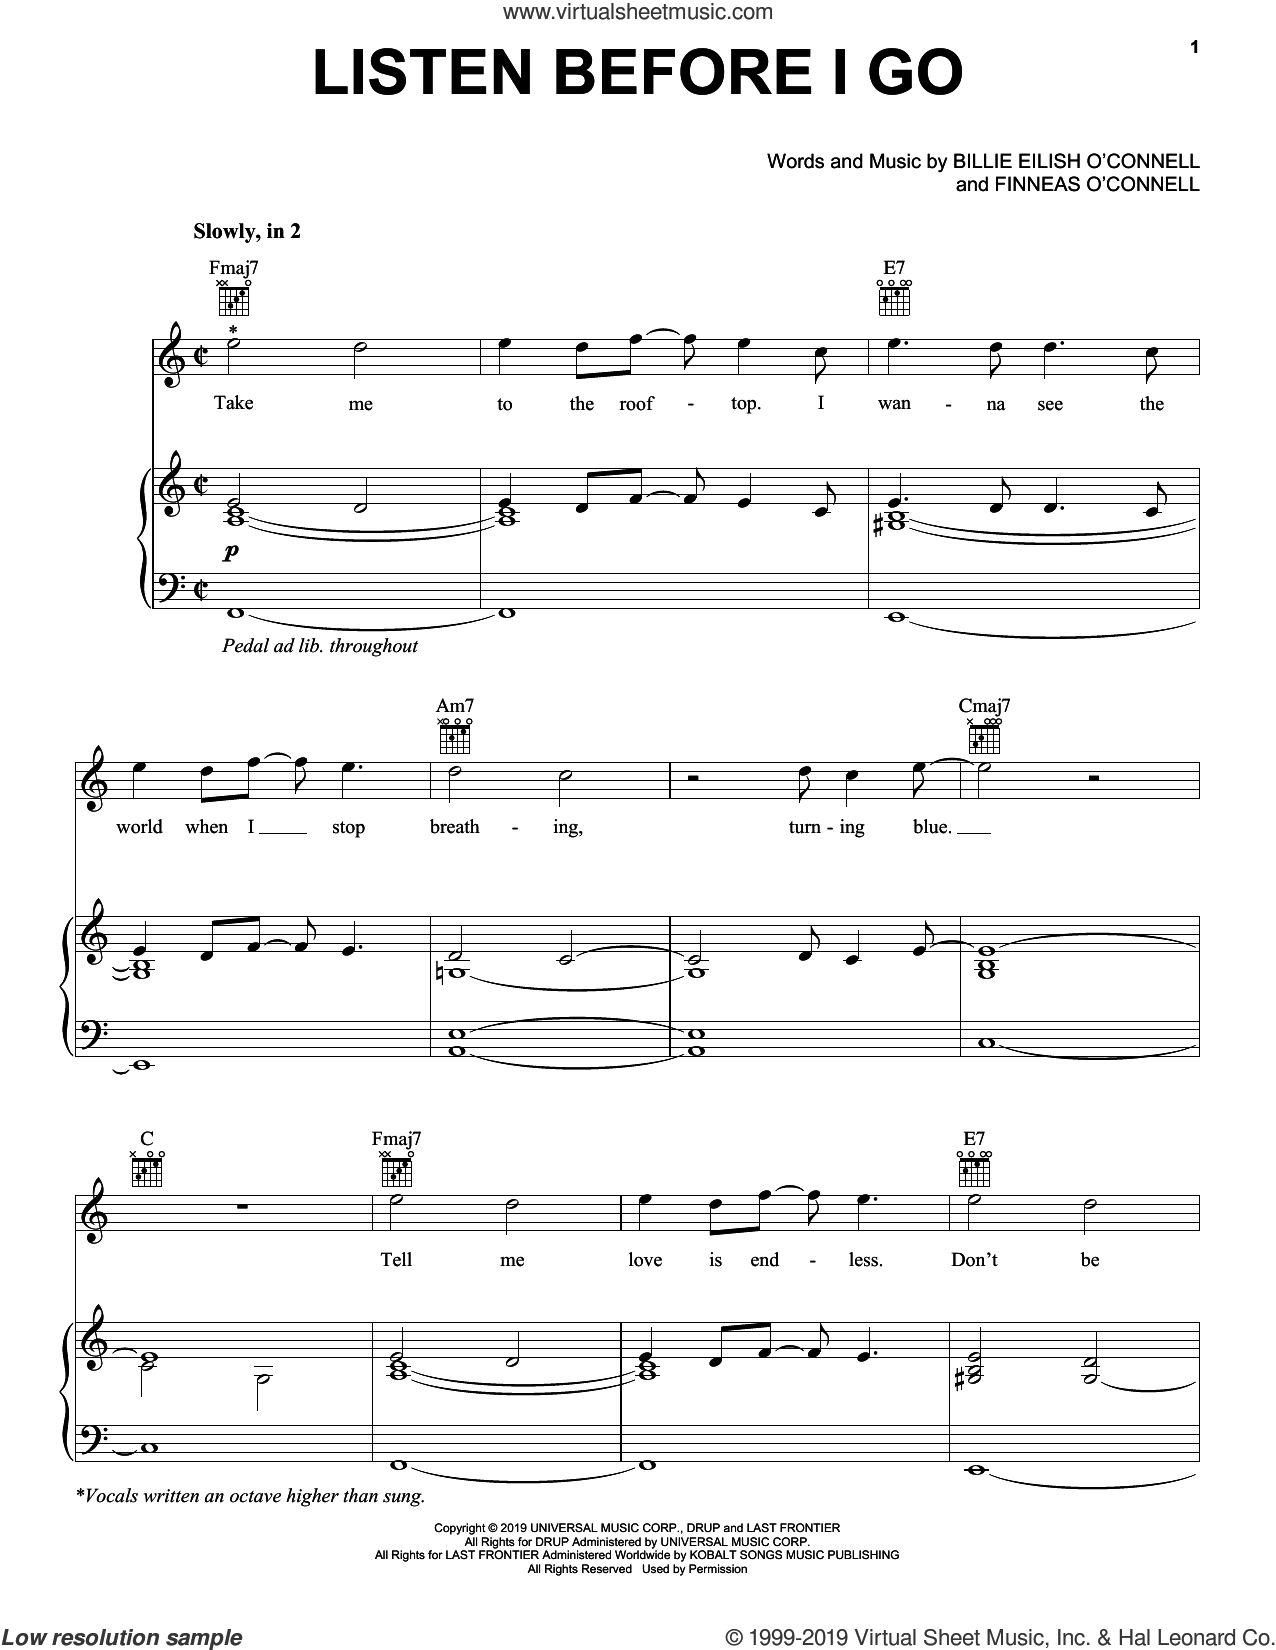 listen before i go sheet music for voice, piano or guitar by Billie Eilish, intermediate skill level